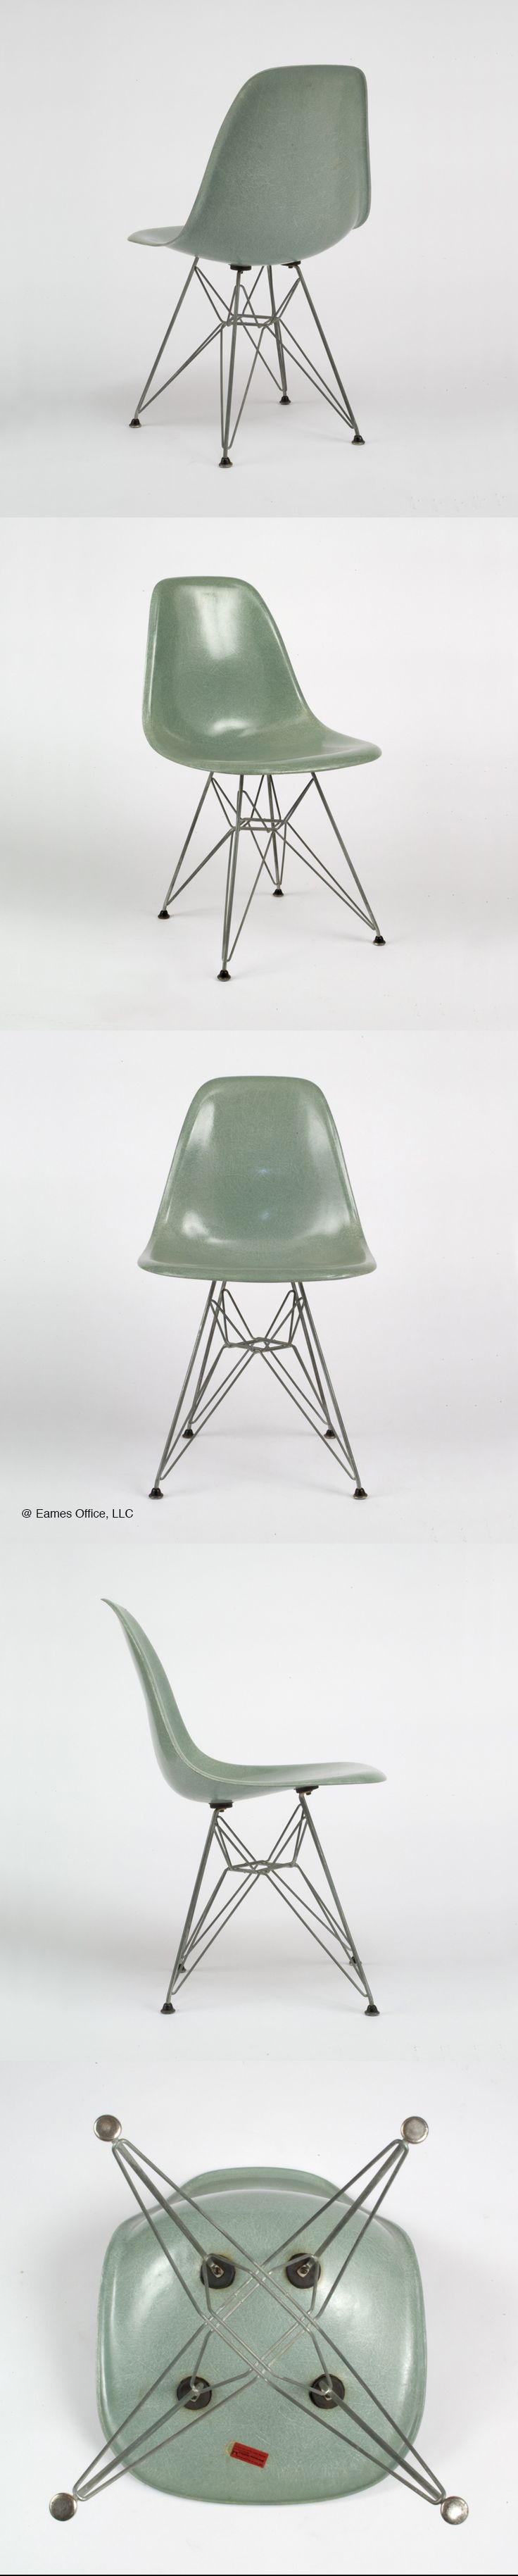 This vintage #Eames DSR in a color devised by Charles and Ray Eames: Sea Foam Green #seafoamgreen beckons you to learn more about Eames designs, on our website!  #Eames @hermanmiller @vitra